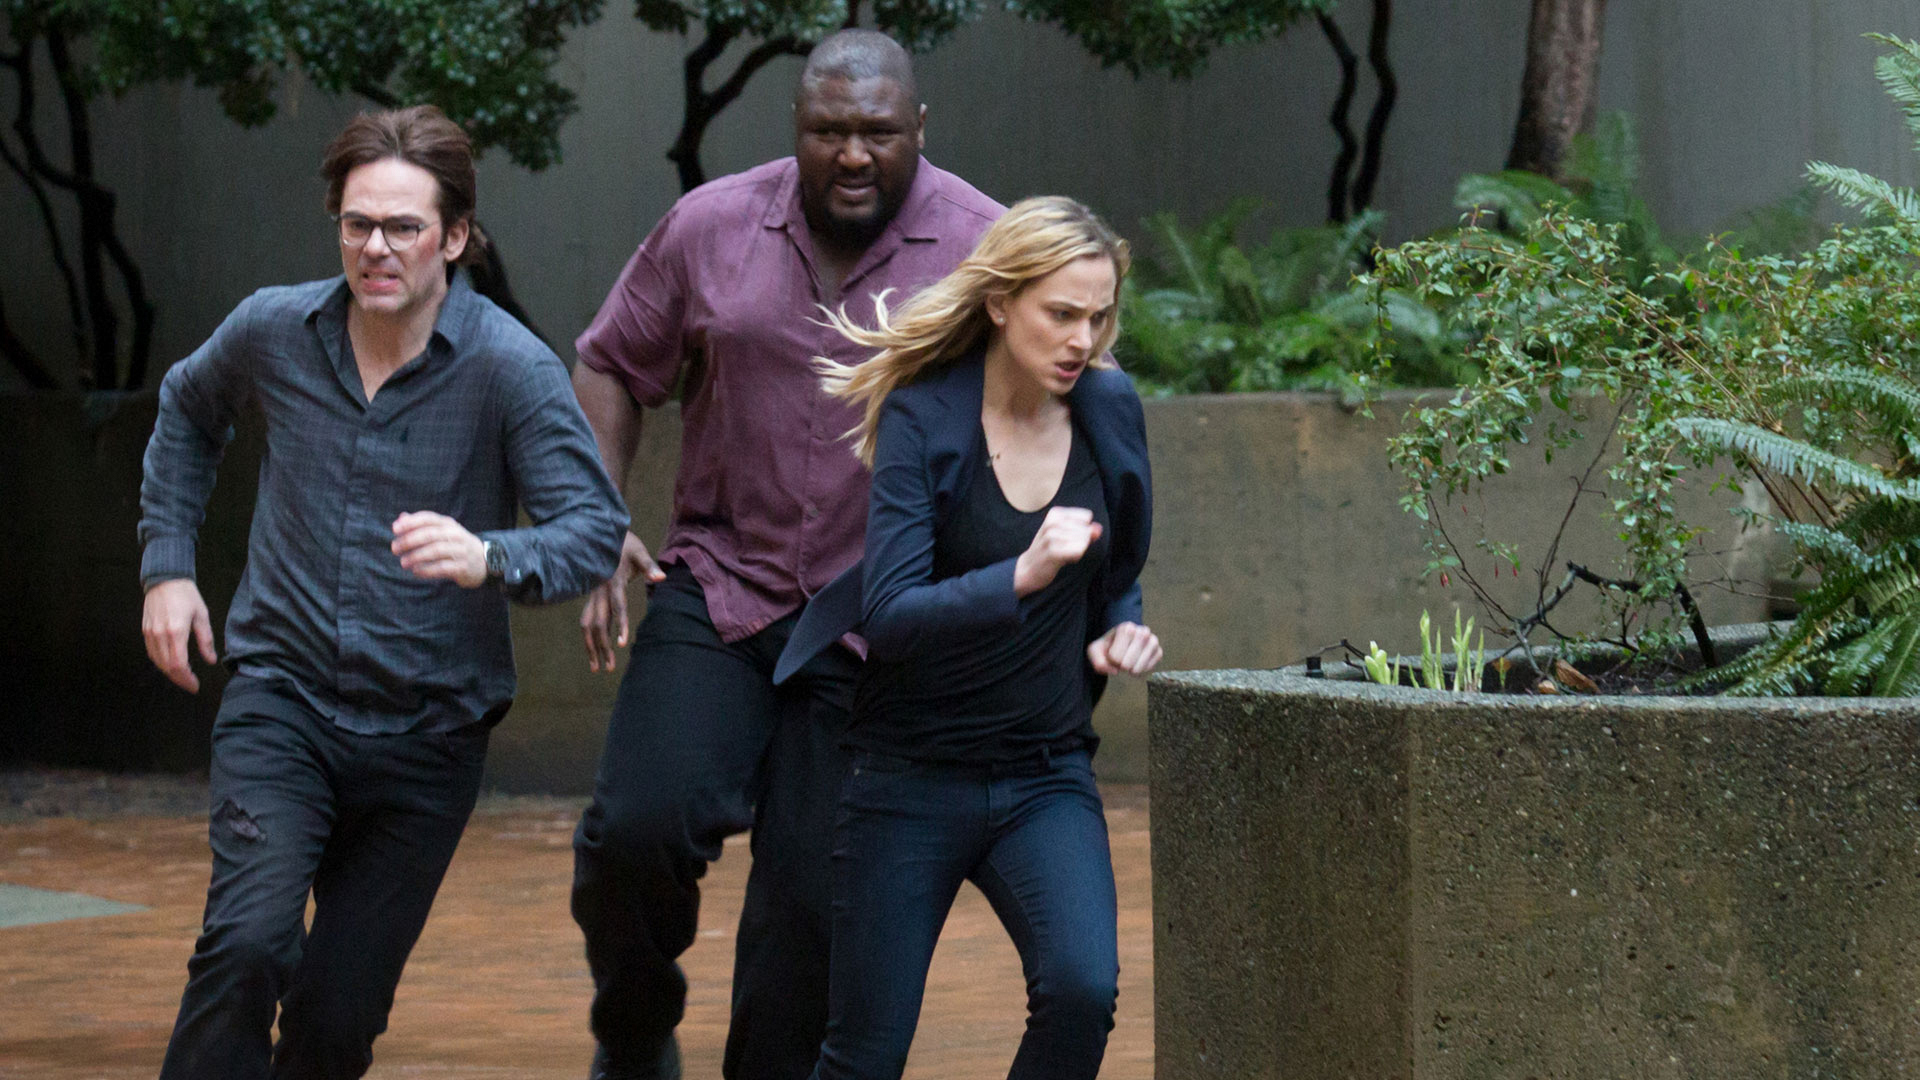 Mitch Morgan, Abraham Kenyatta, and Chloe Tousignant on the move.